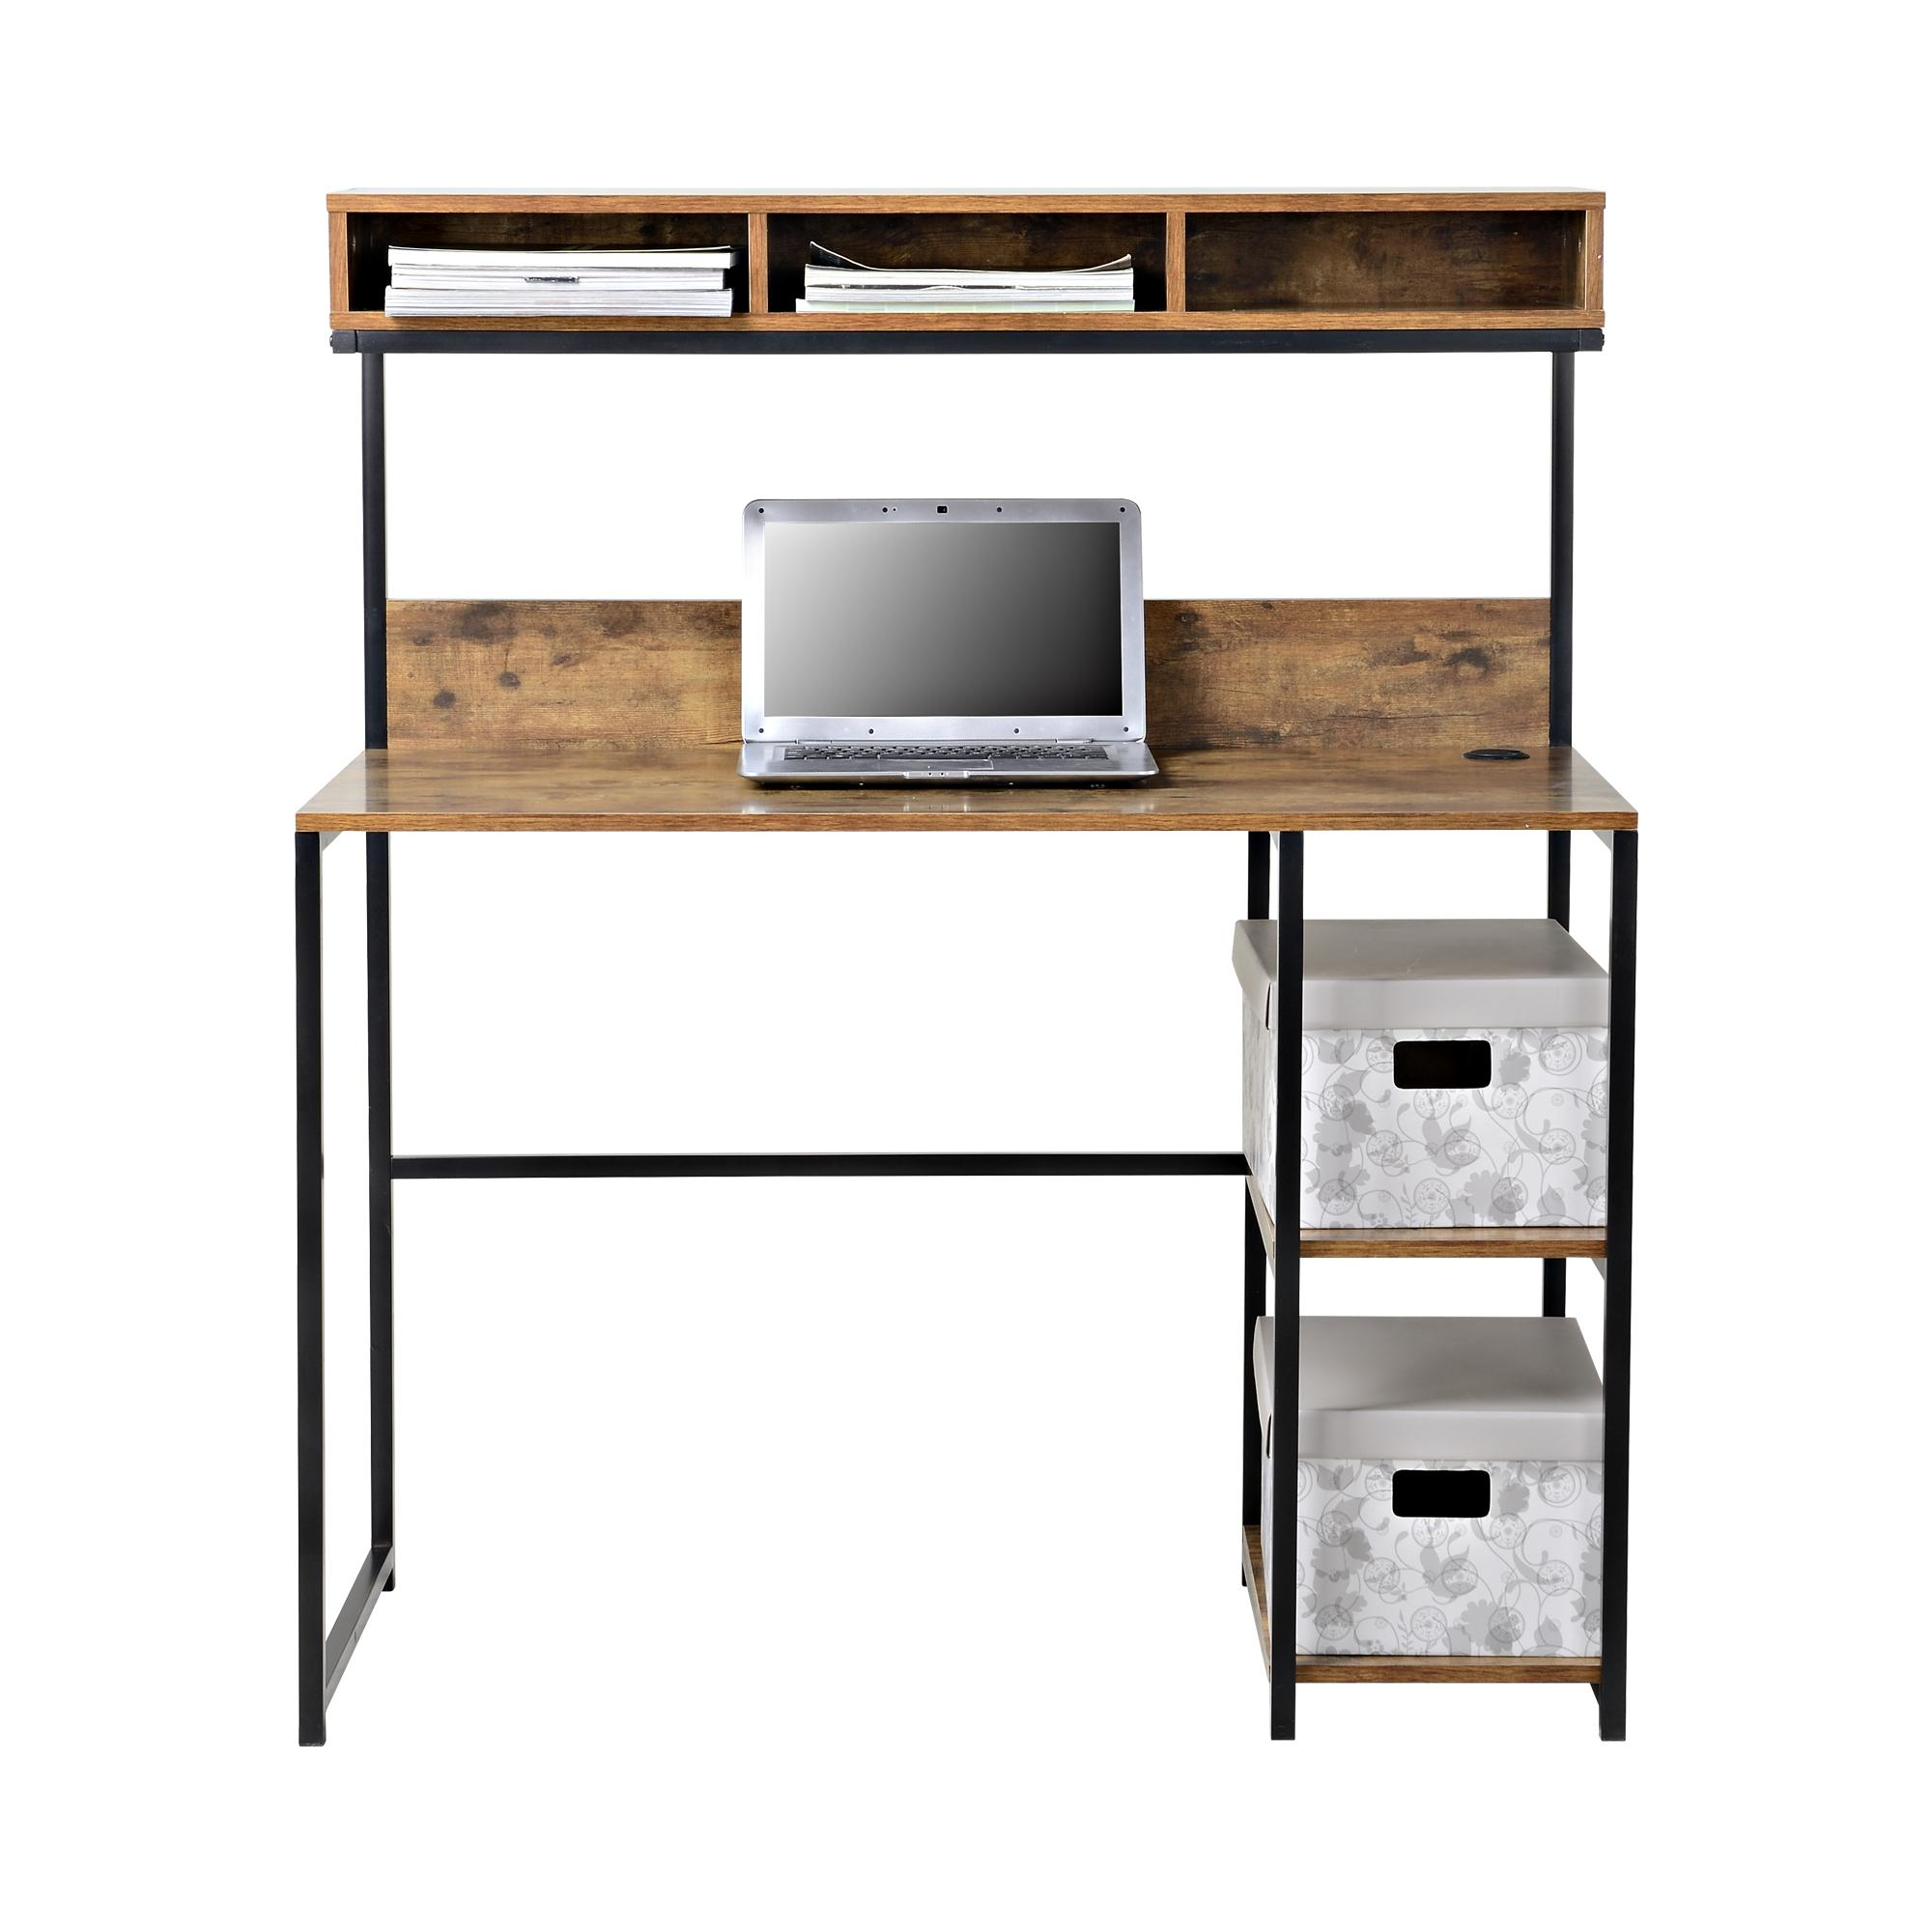 Roll Over Image to Zoom. Homestar Homestar Laptop Desk with Hutch by OJ Commerce Z1510259